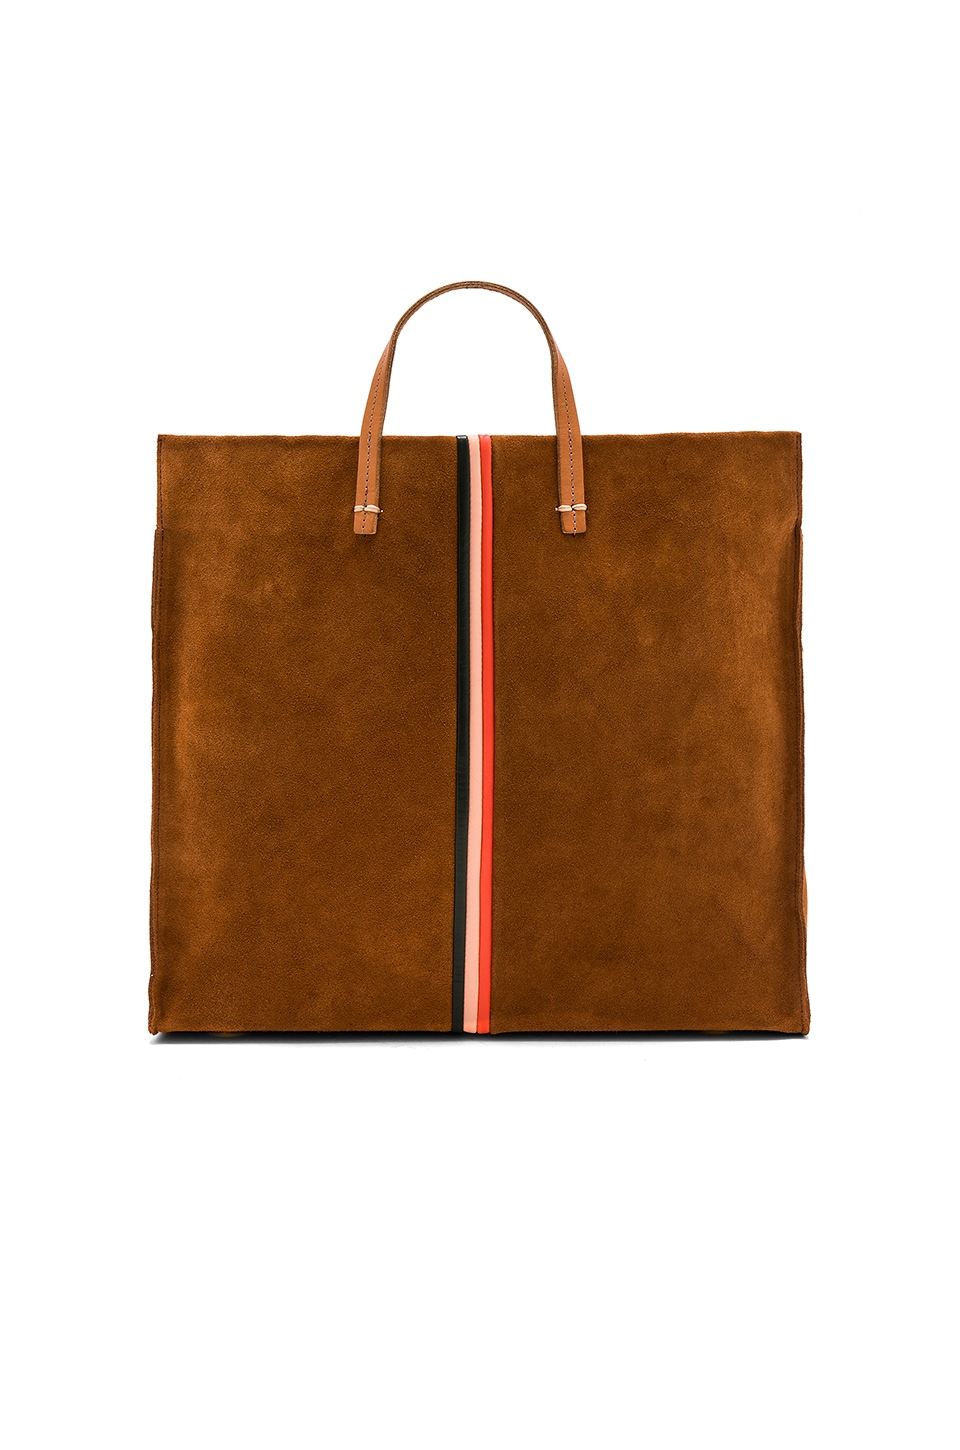 Clare V. Supreme Simple Tote in Chestnut & Mini Stripe